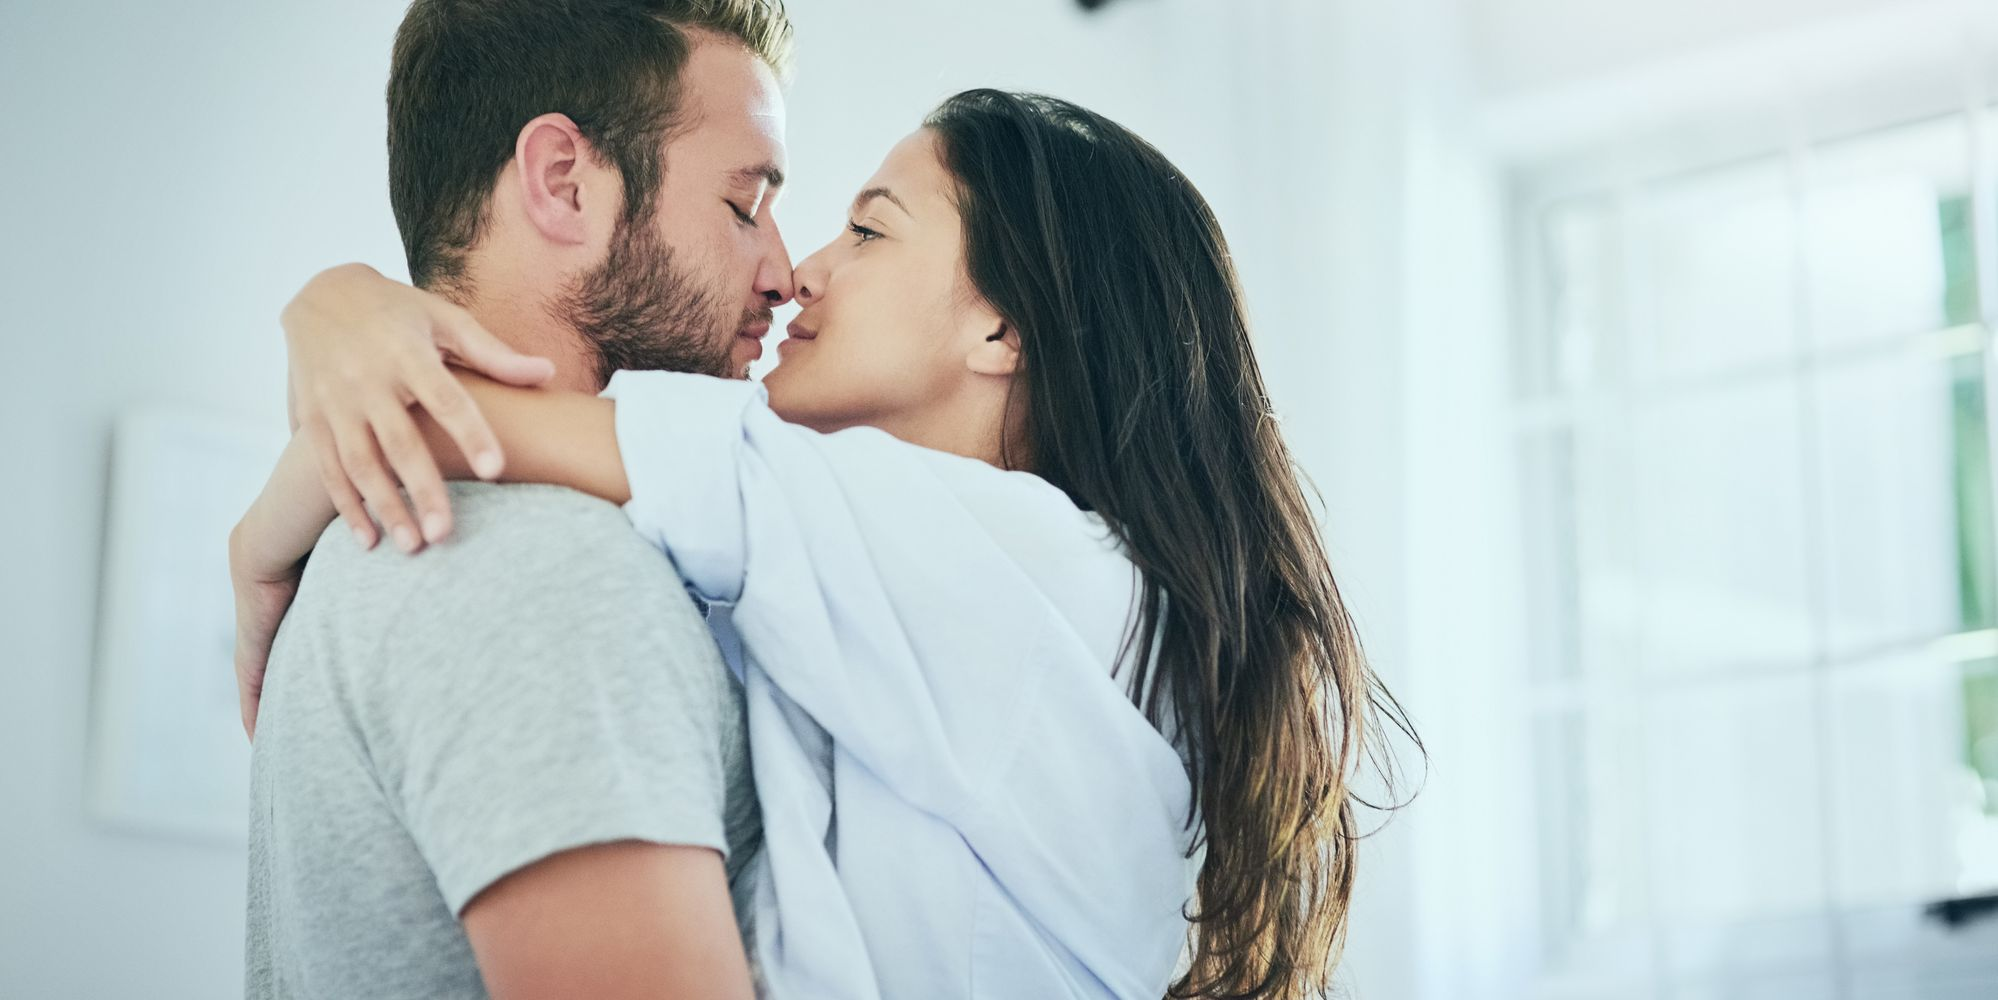 14 Reasons Why Morning Sex Is The Absolute Best